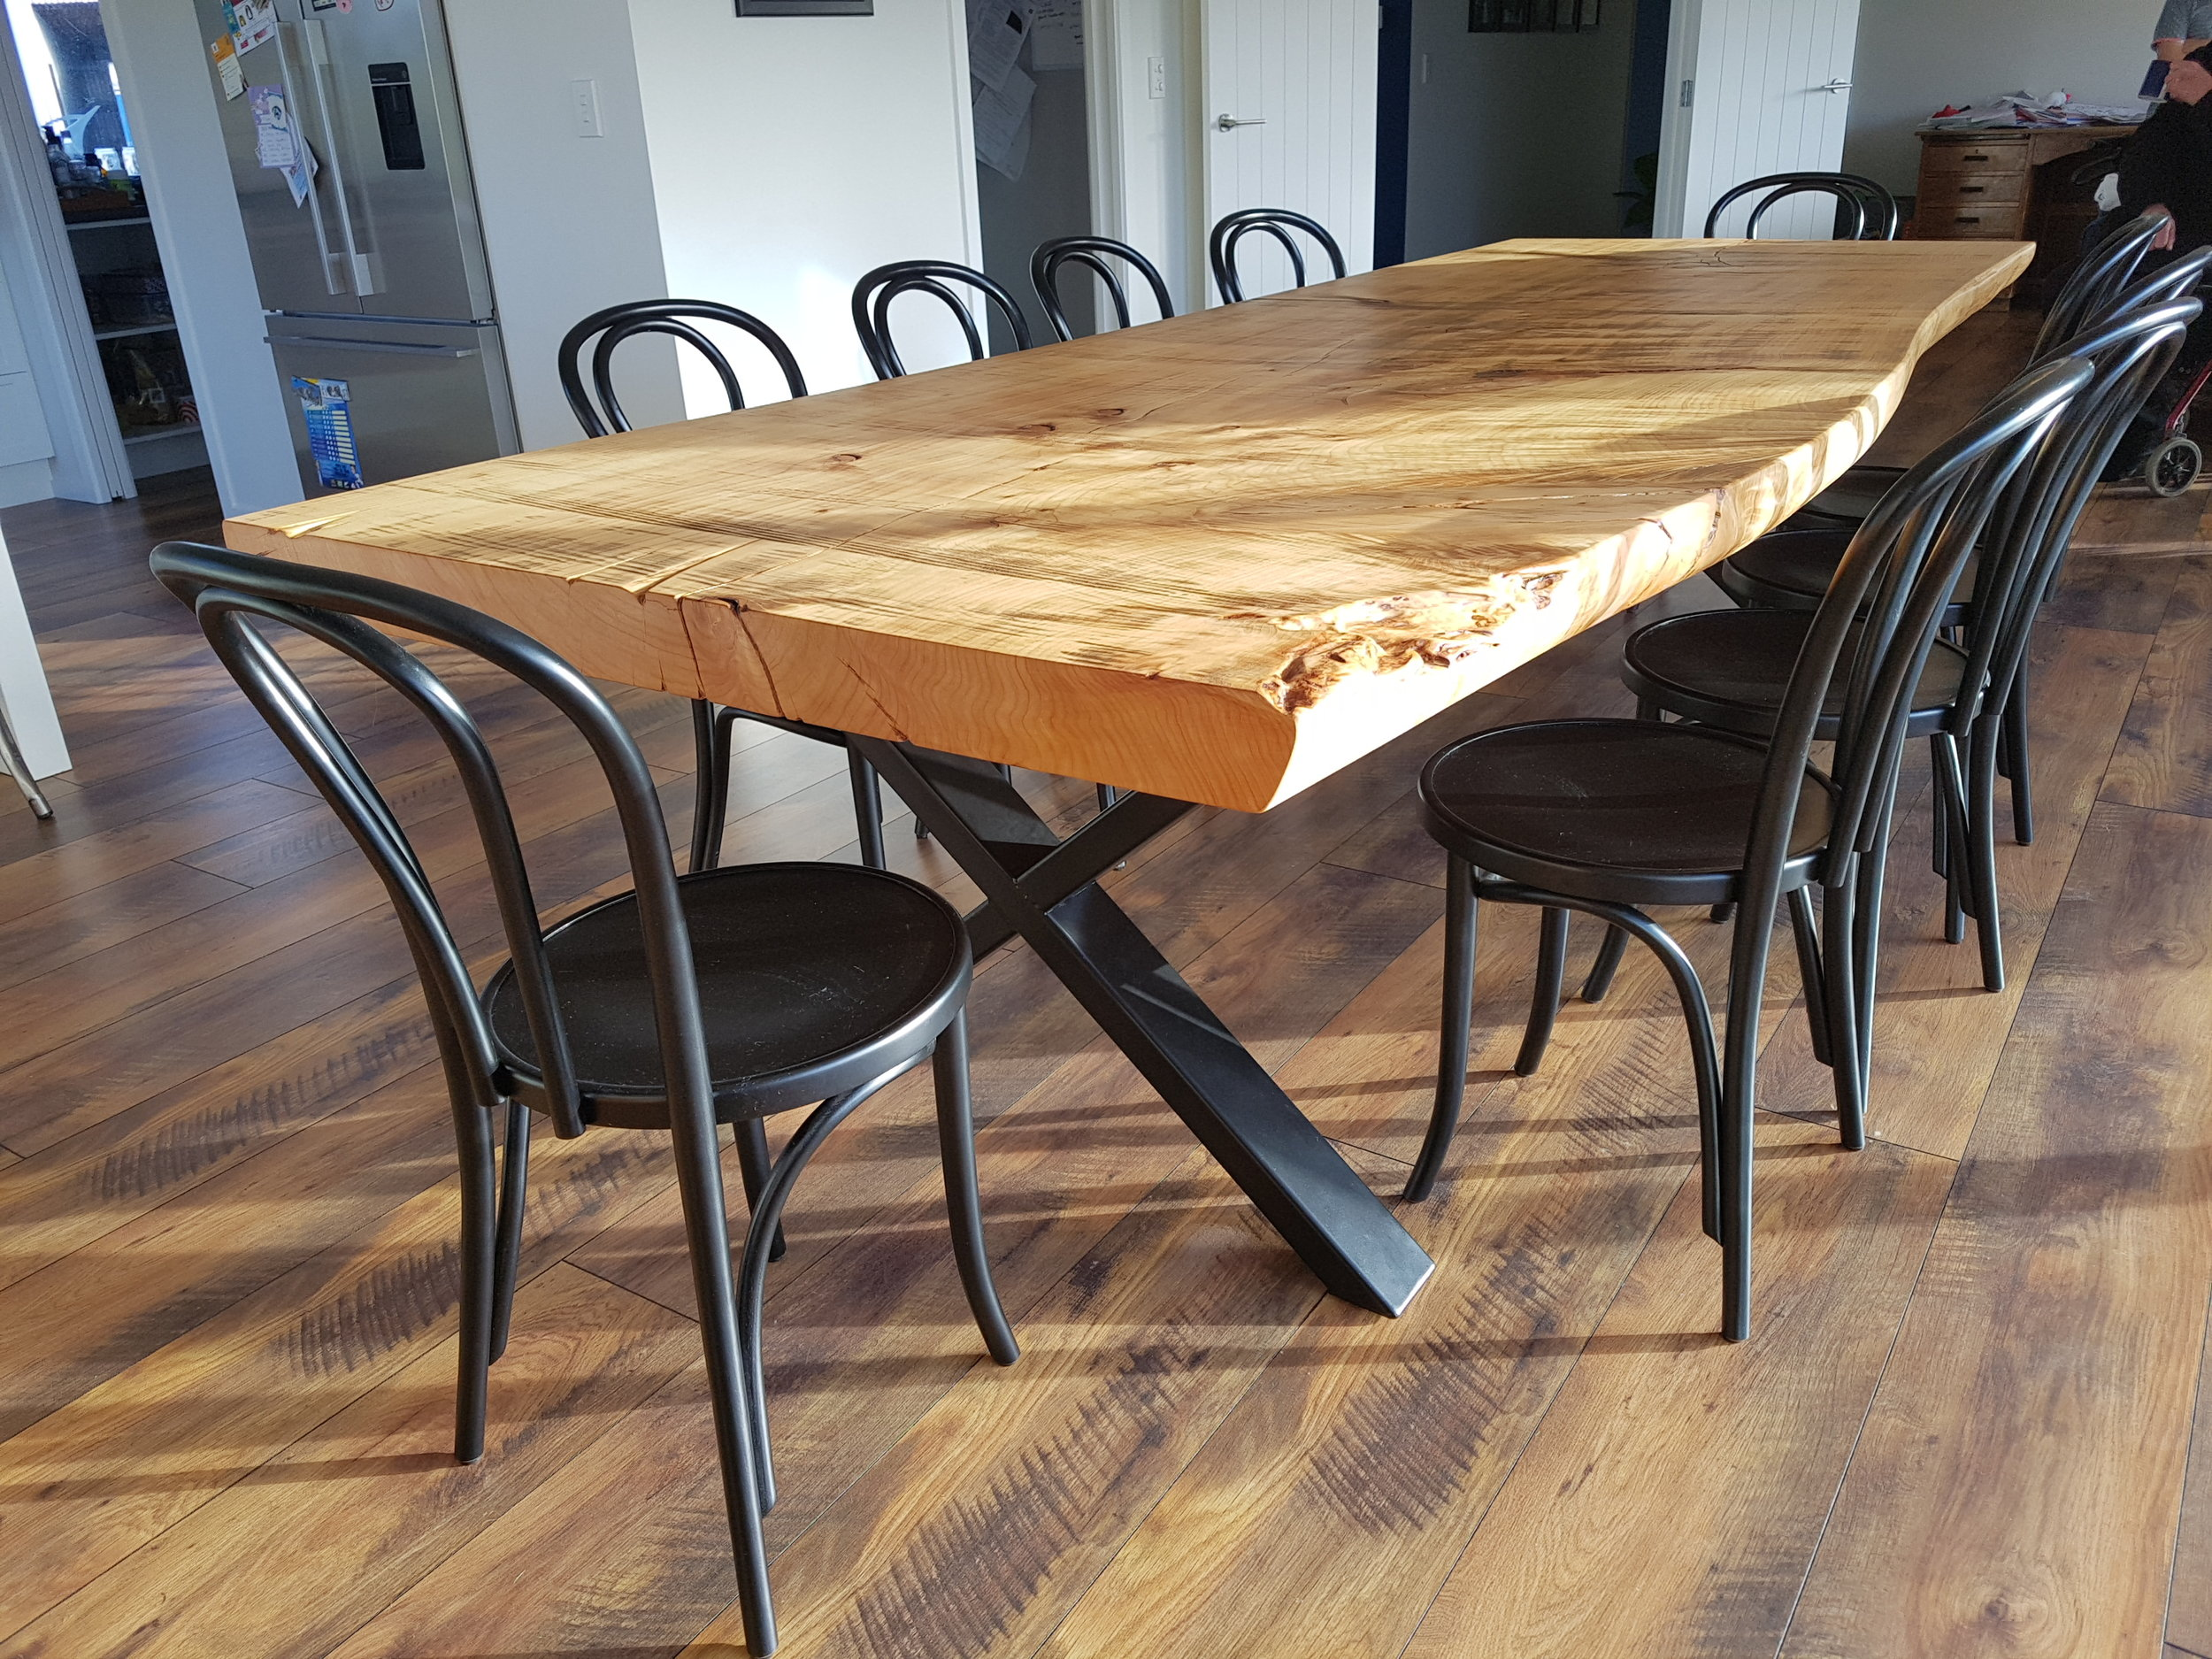 Macrocarpa Dining Table with X style steel legs,   dining table prices  .